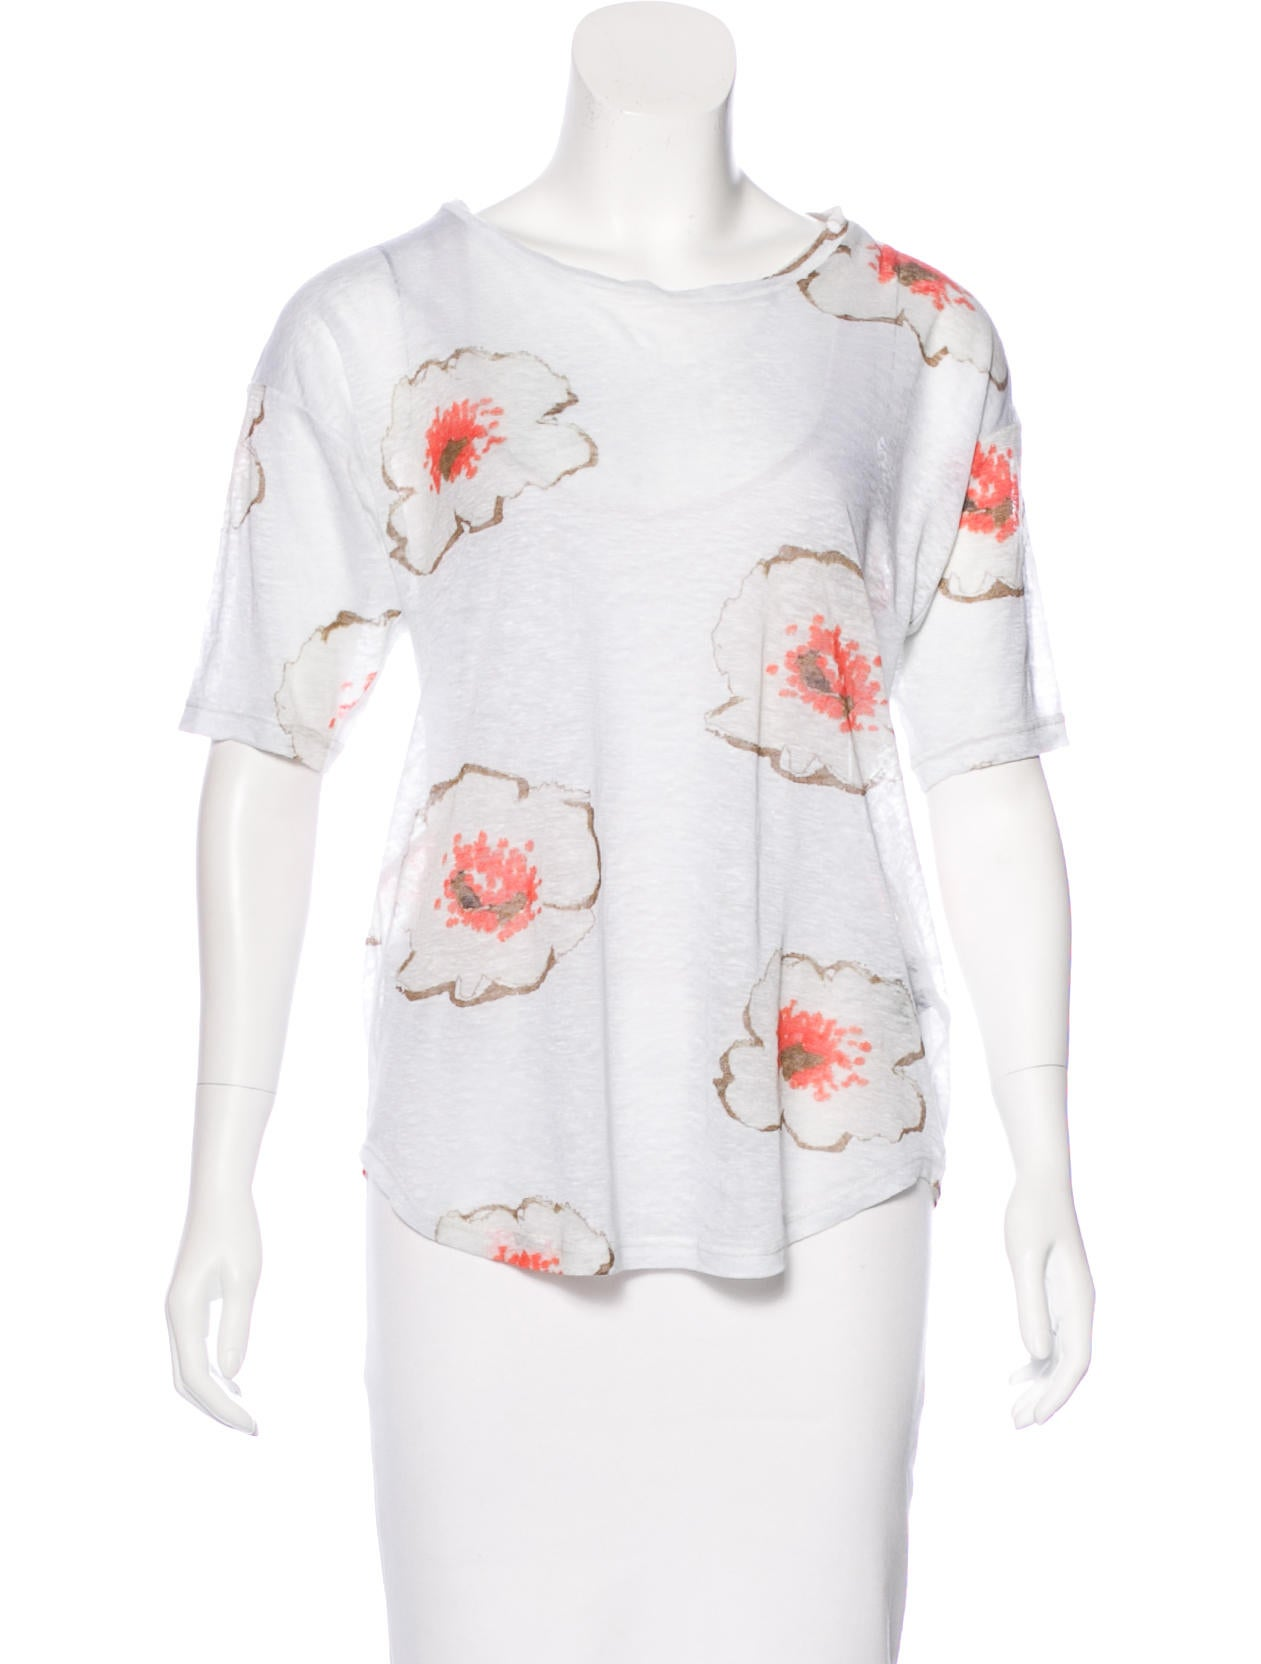 Toile Isabel Marant Linen Jesca T Shirt Clothing